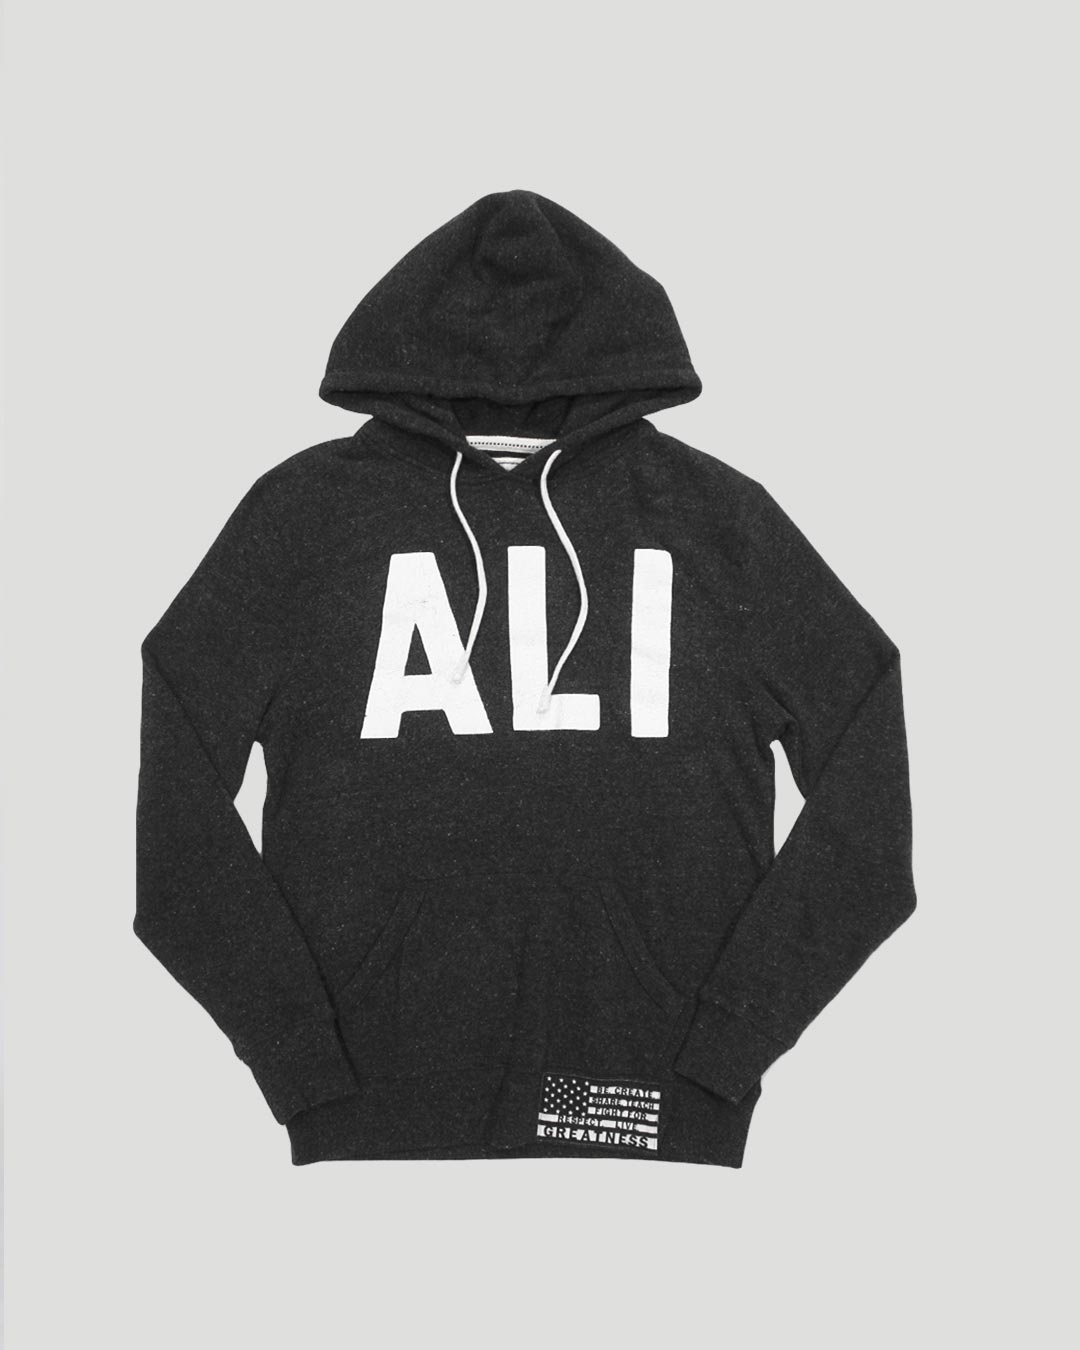 Black History Tribute - Ali Pullover Hoody - Roots of Inc dba Roots of Fight